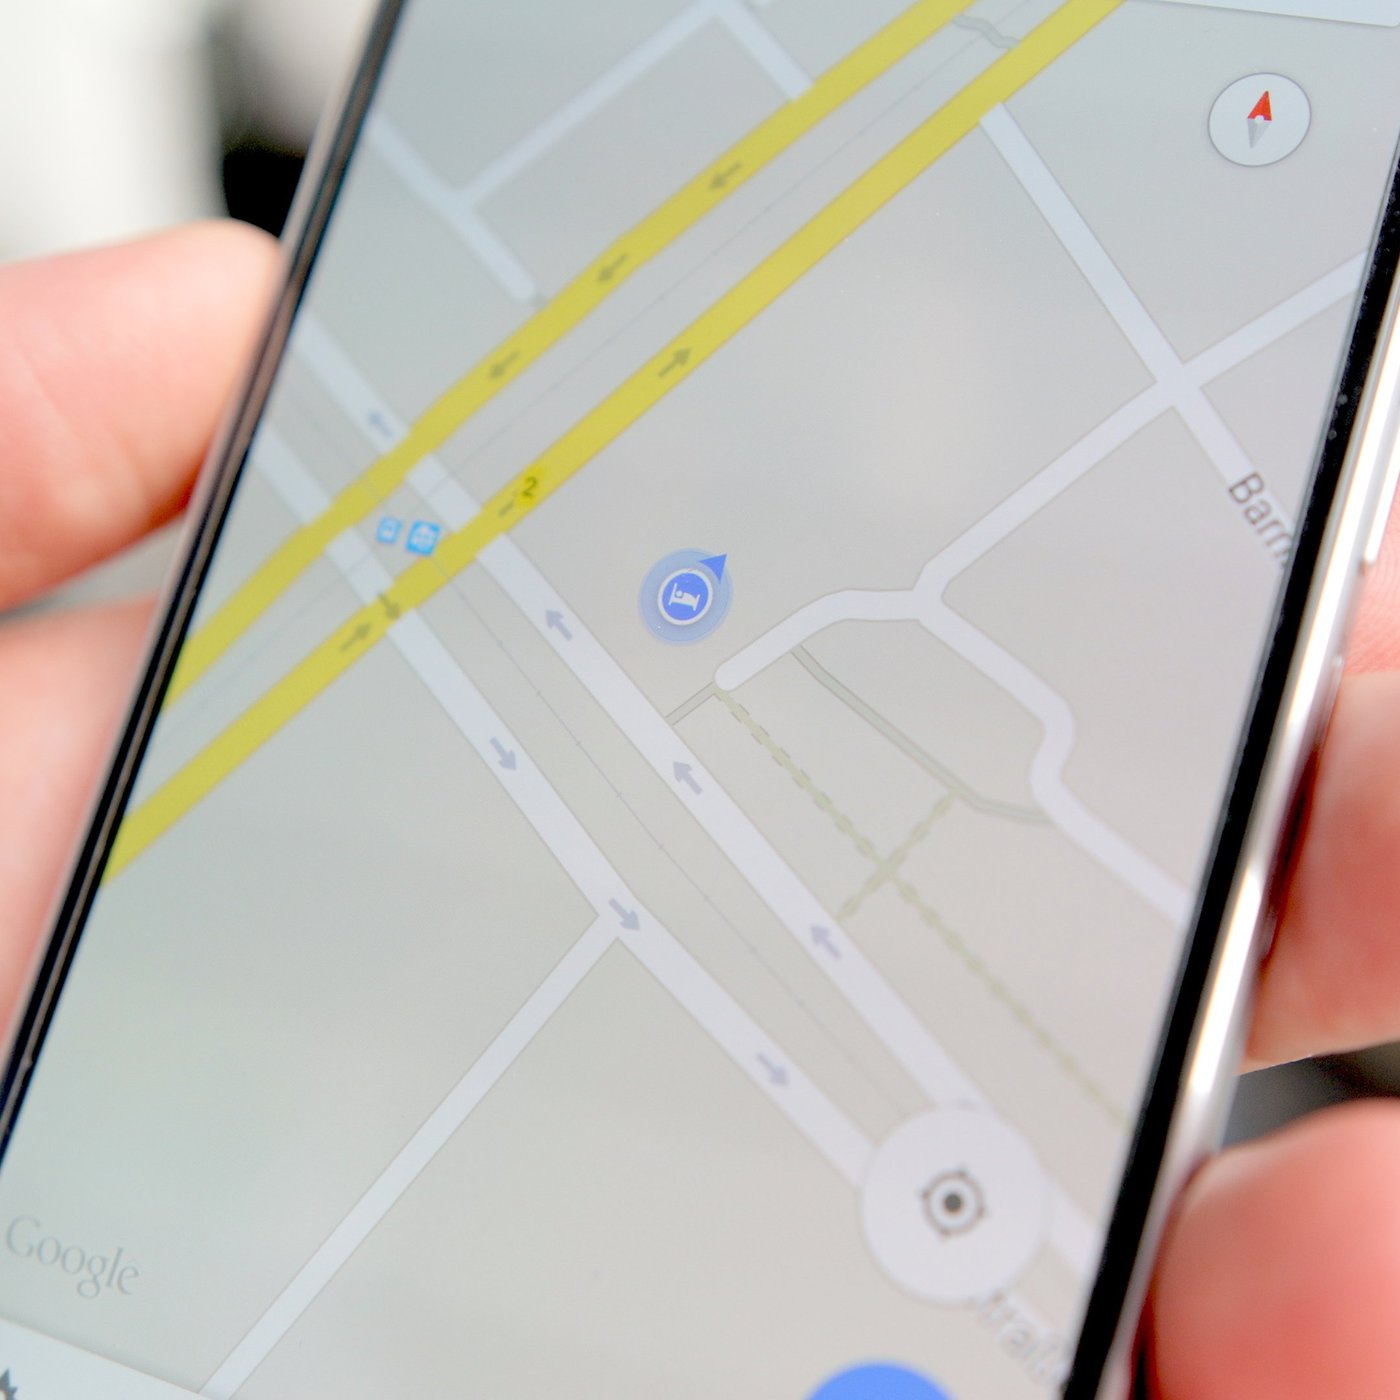 How to turn off location tracking on Android | AndroidPIT